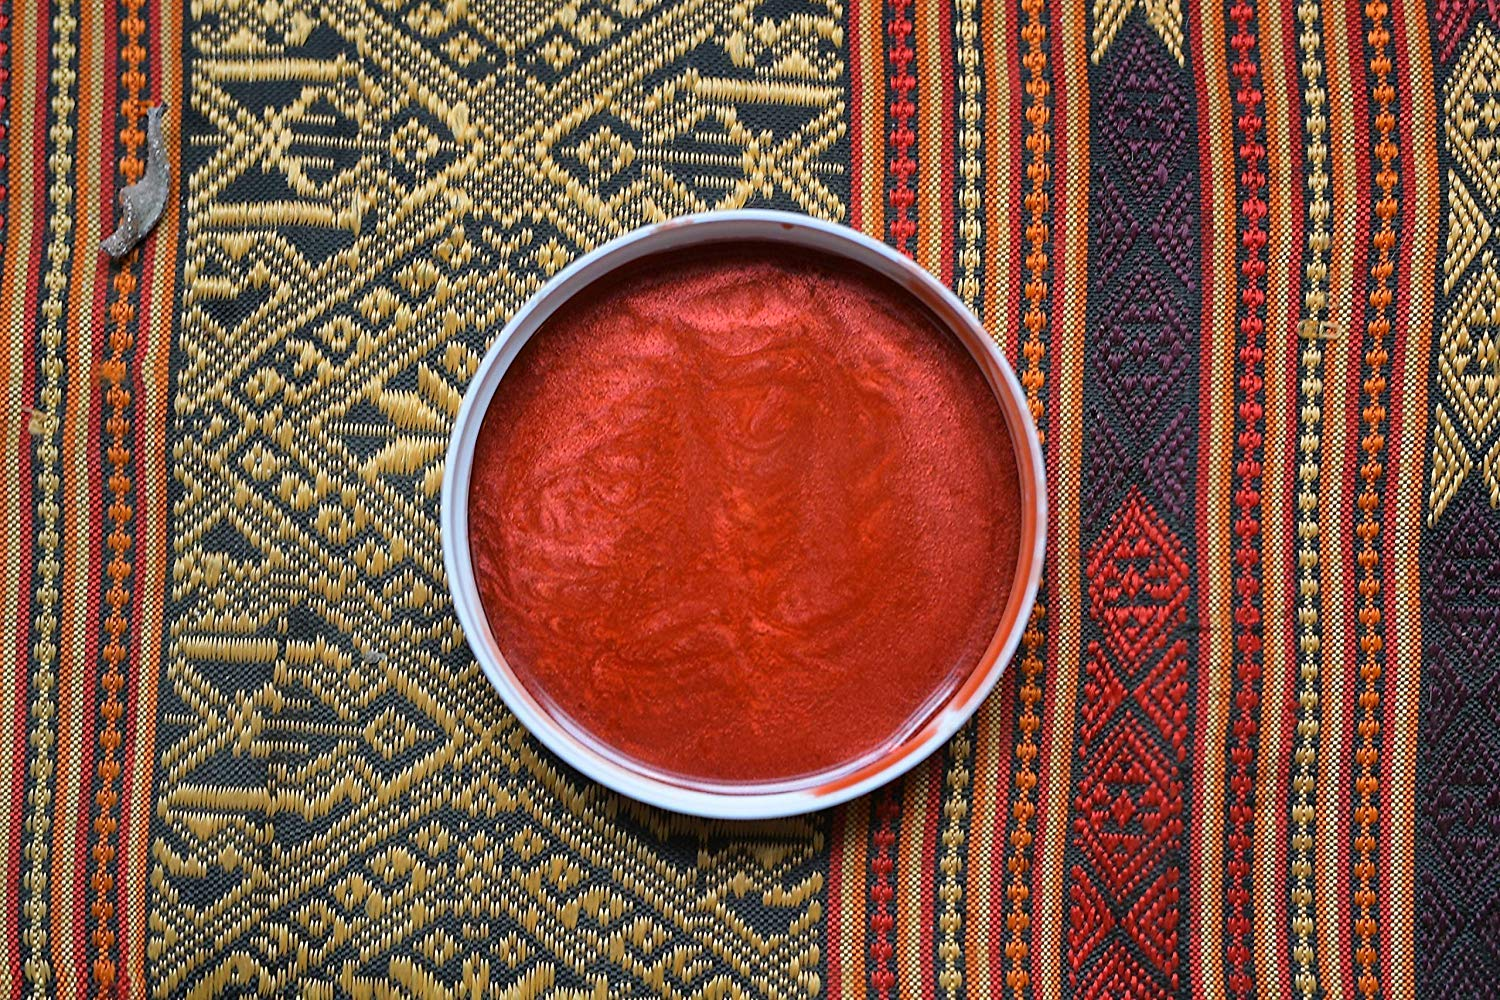 Tru Lustre Metallic Pigment | Mica Powder for Epoxy, DIY Crafts, and More (Ruby Red, 6 oz.)